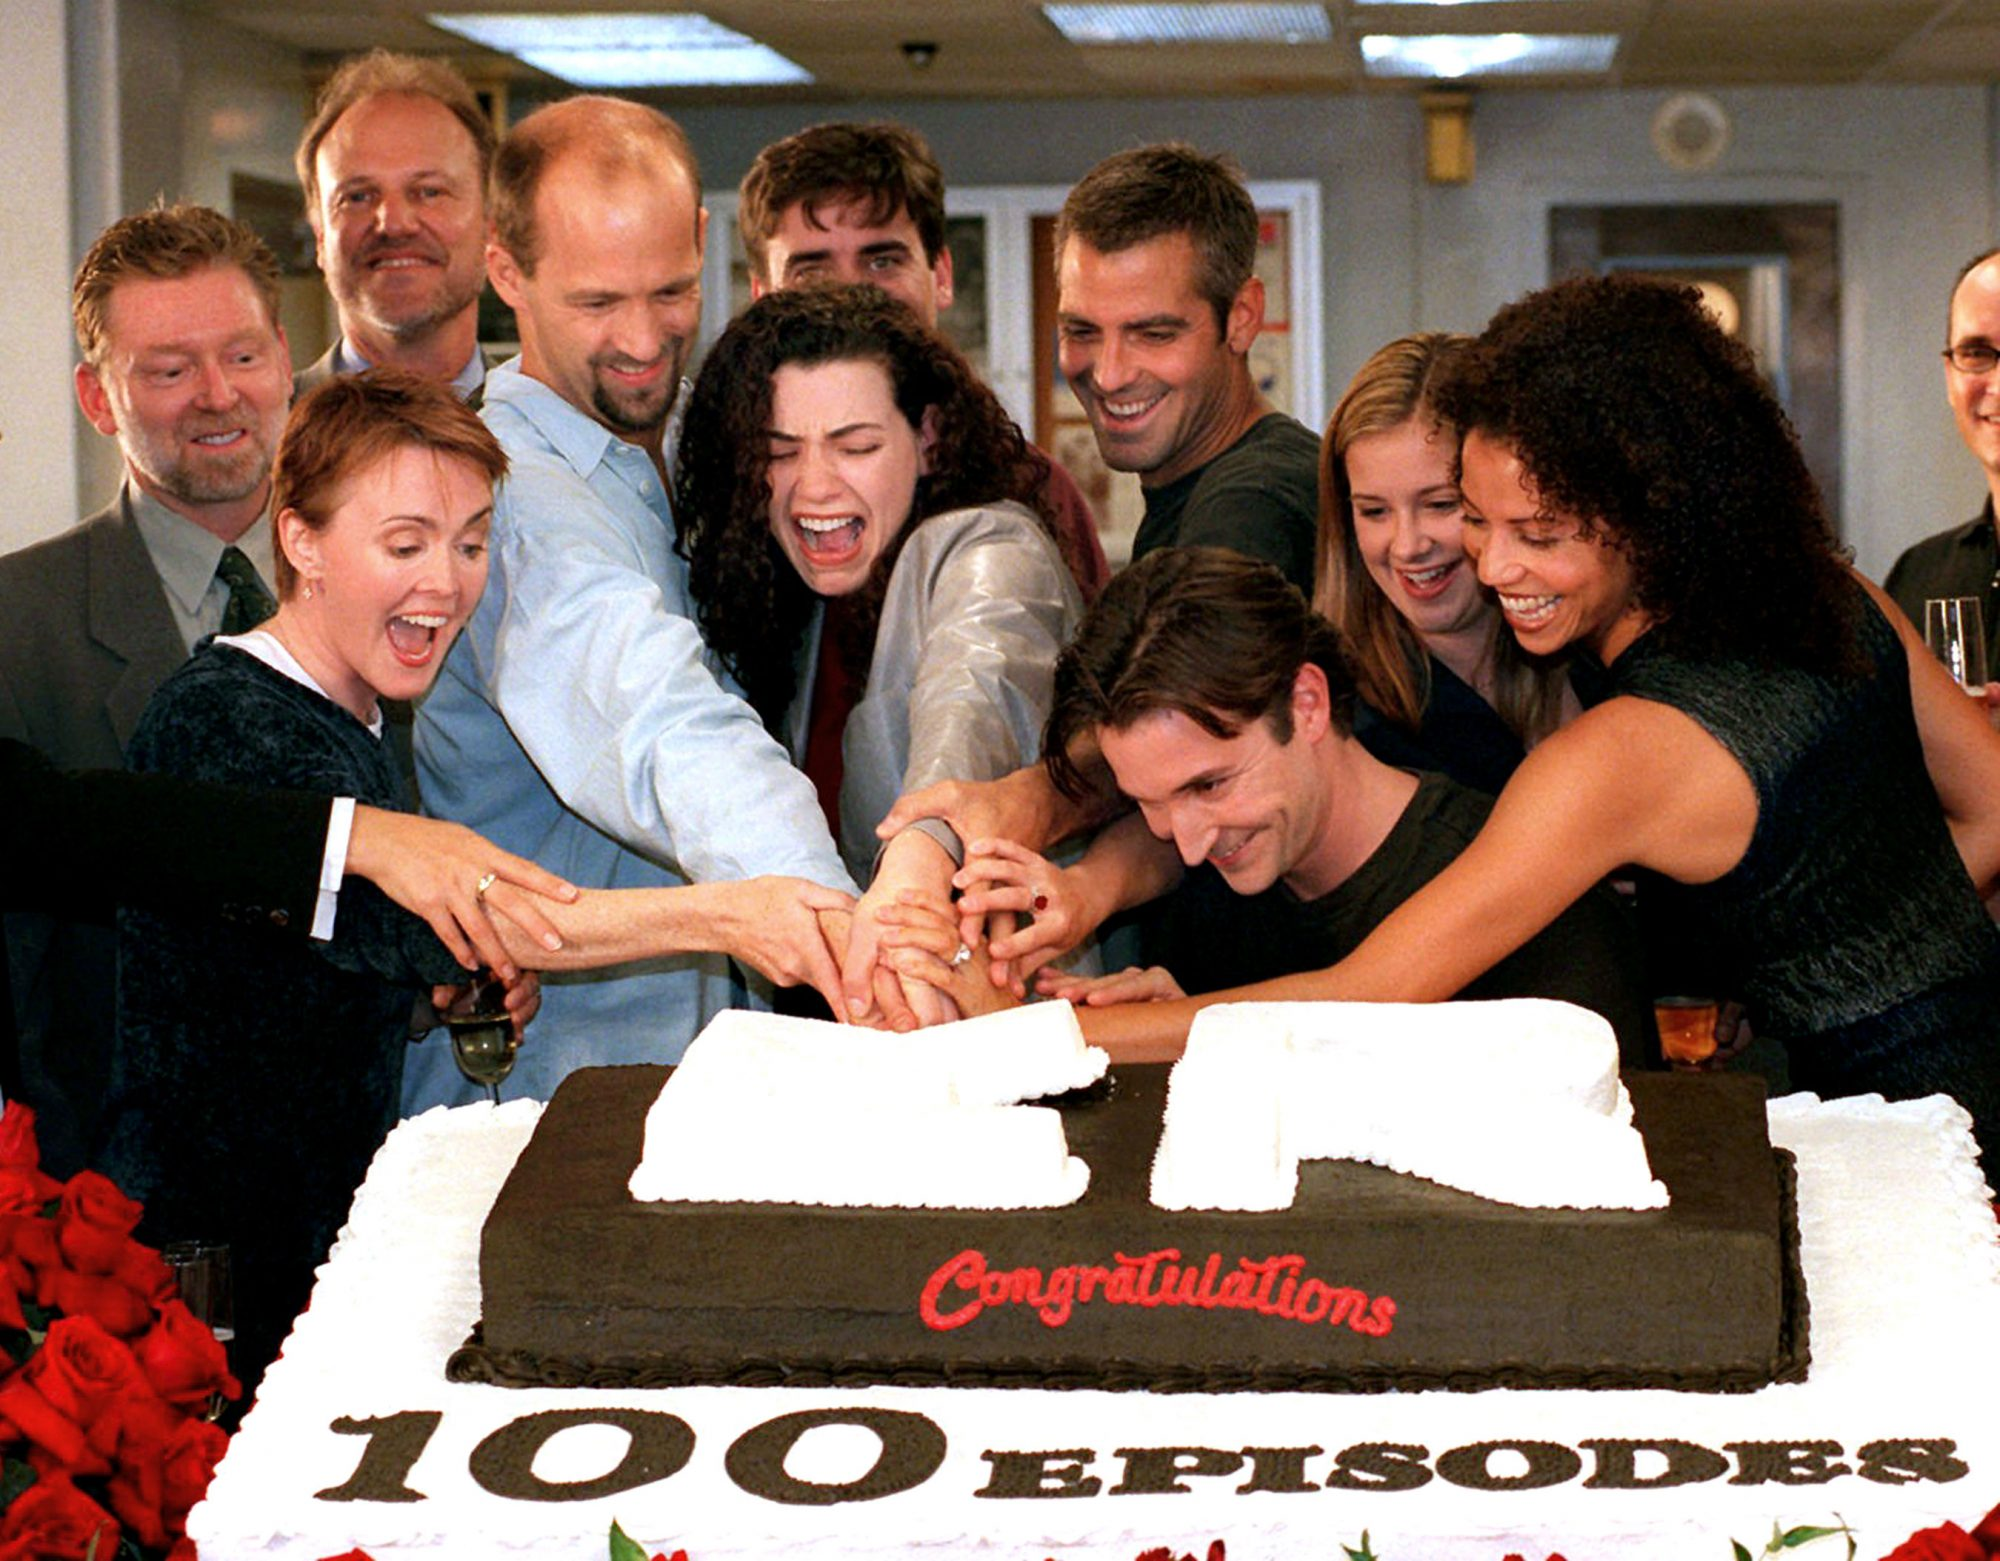 Laura Innes, Anthony Edwards, Julianna Margulies, George Clooney, Noah Wyle, Kellie Martin, Gloria Reuben